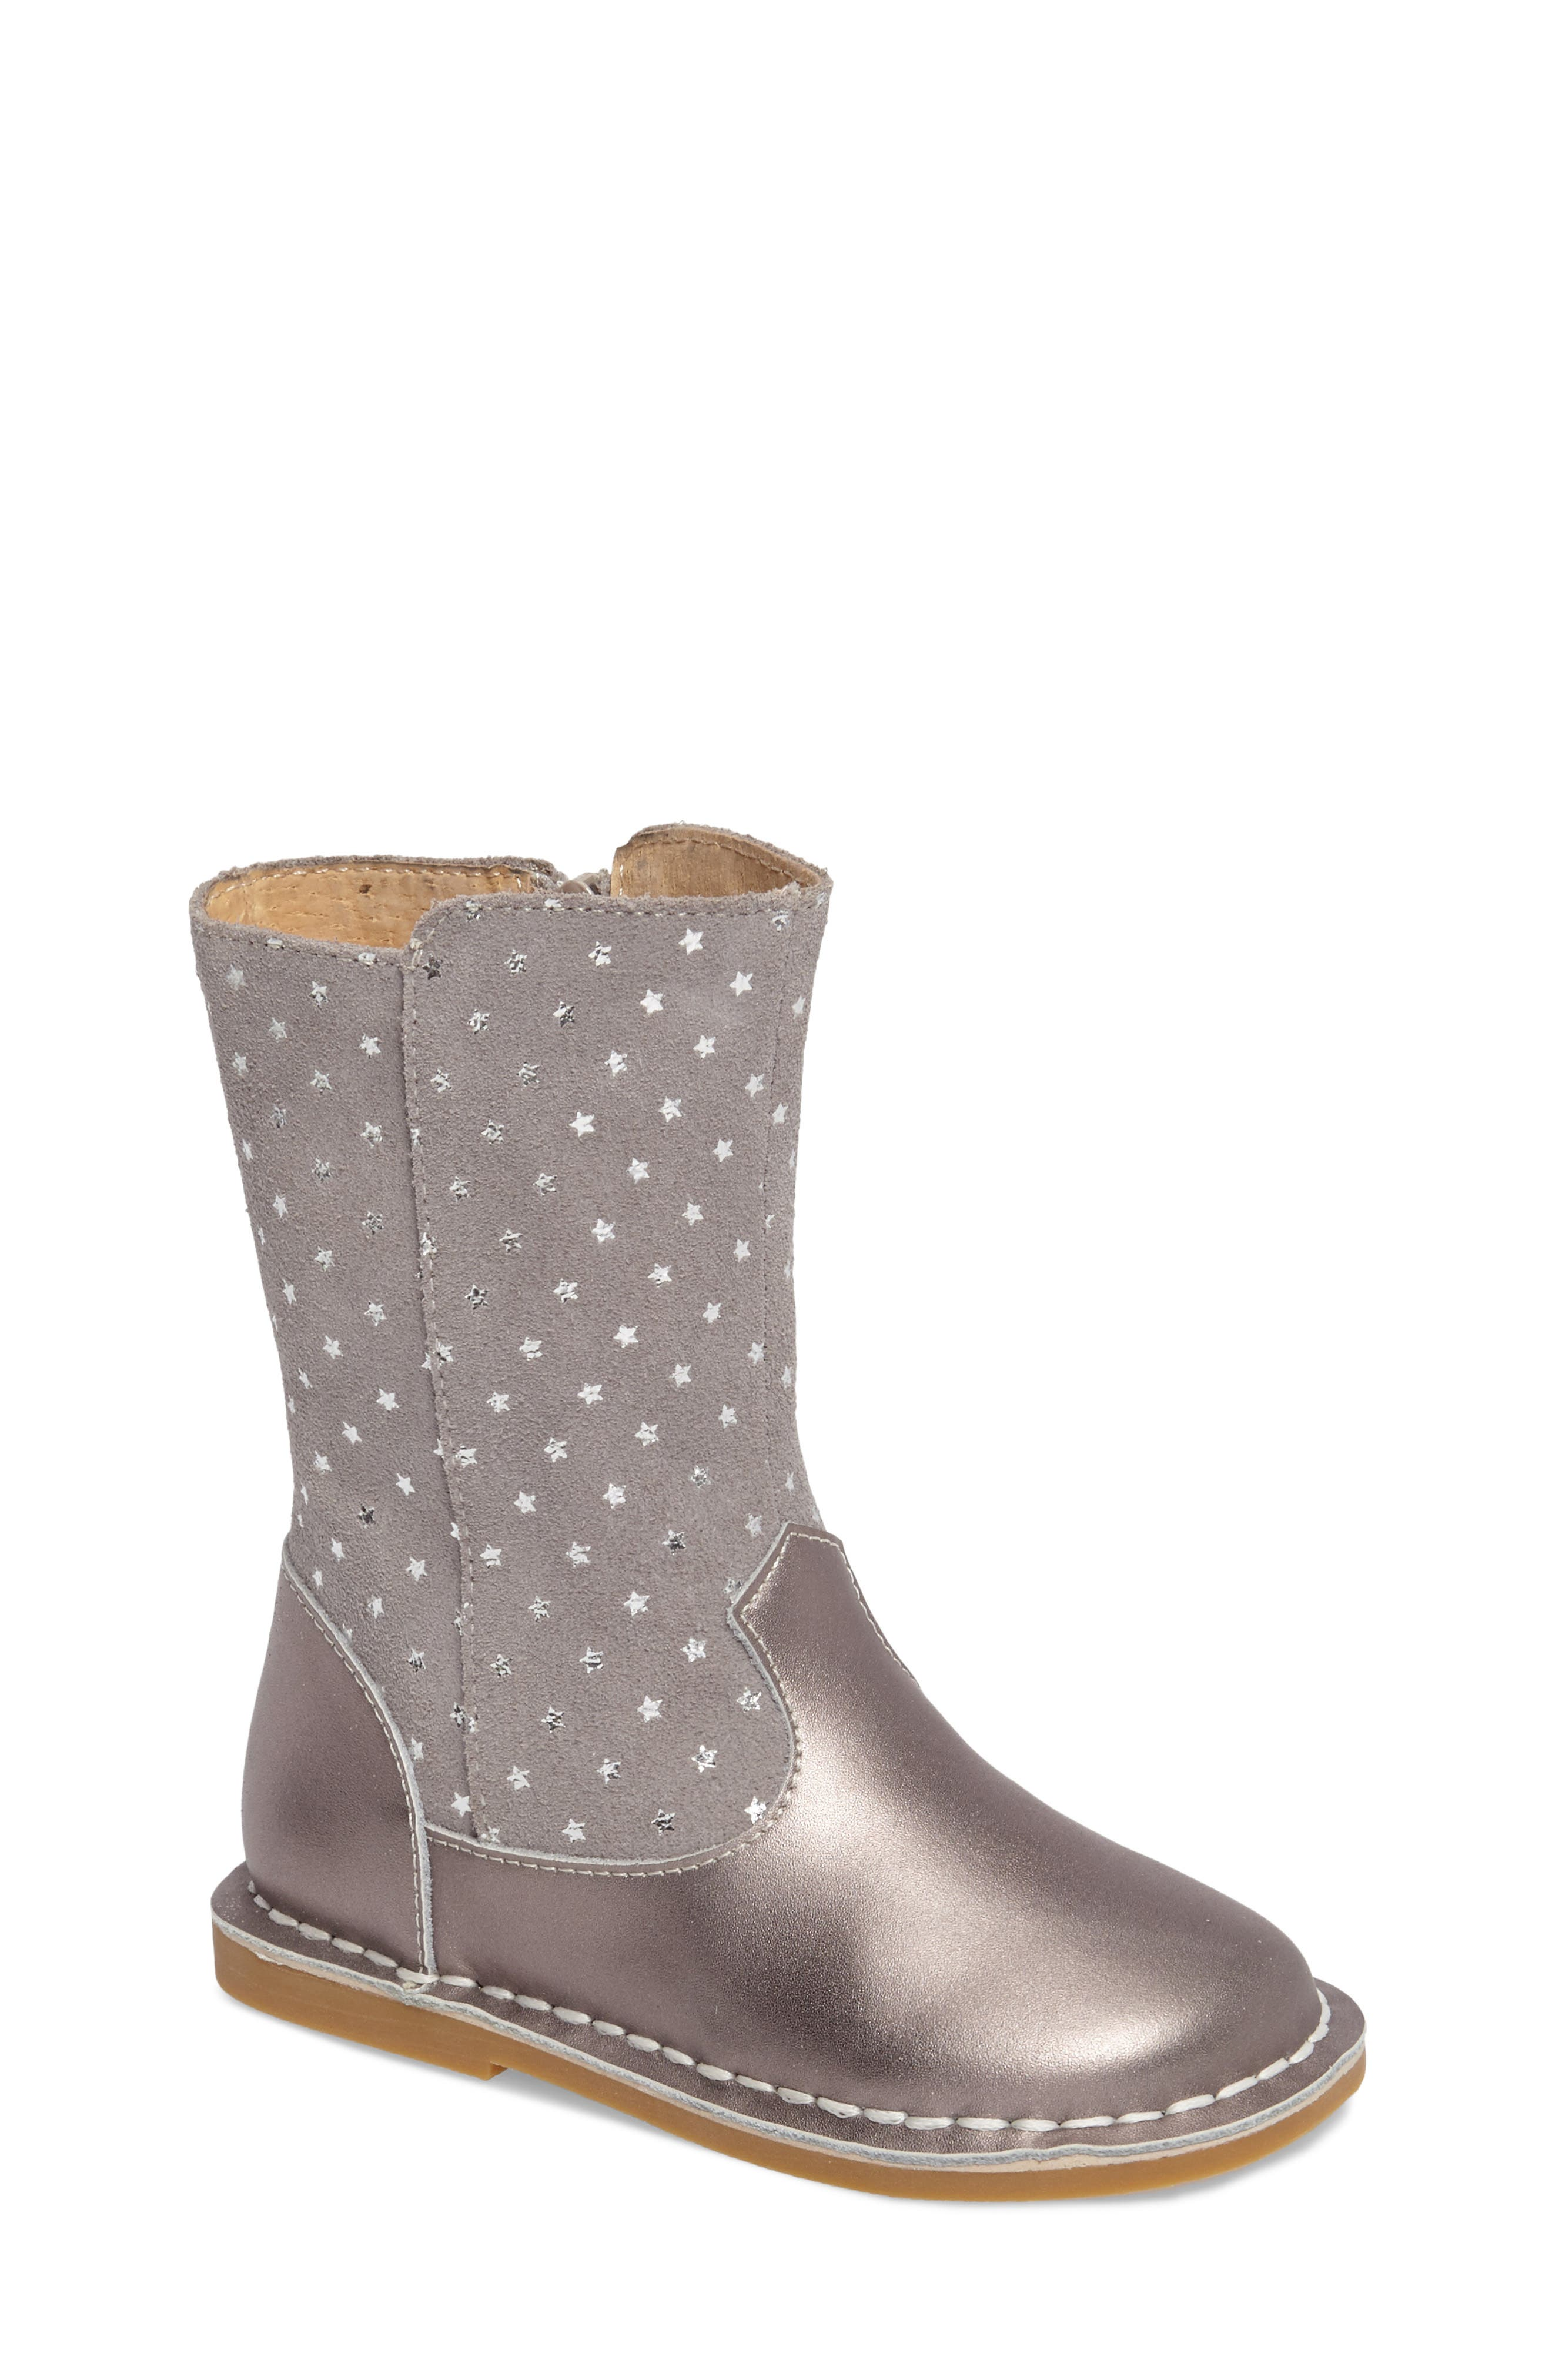 Livie & Luca Vega Metallic Star Bootie (Baby, Walker, Toddler & Little Kid)